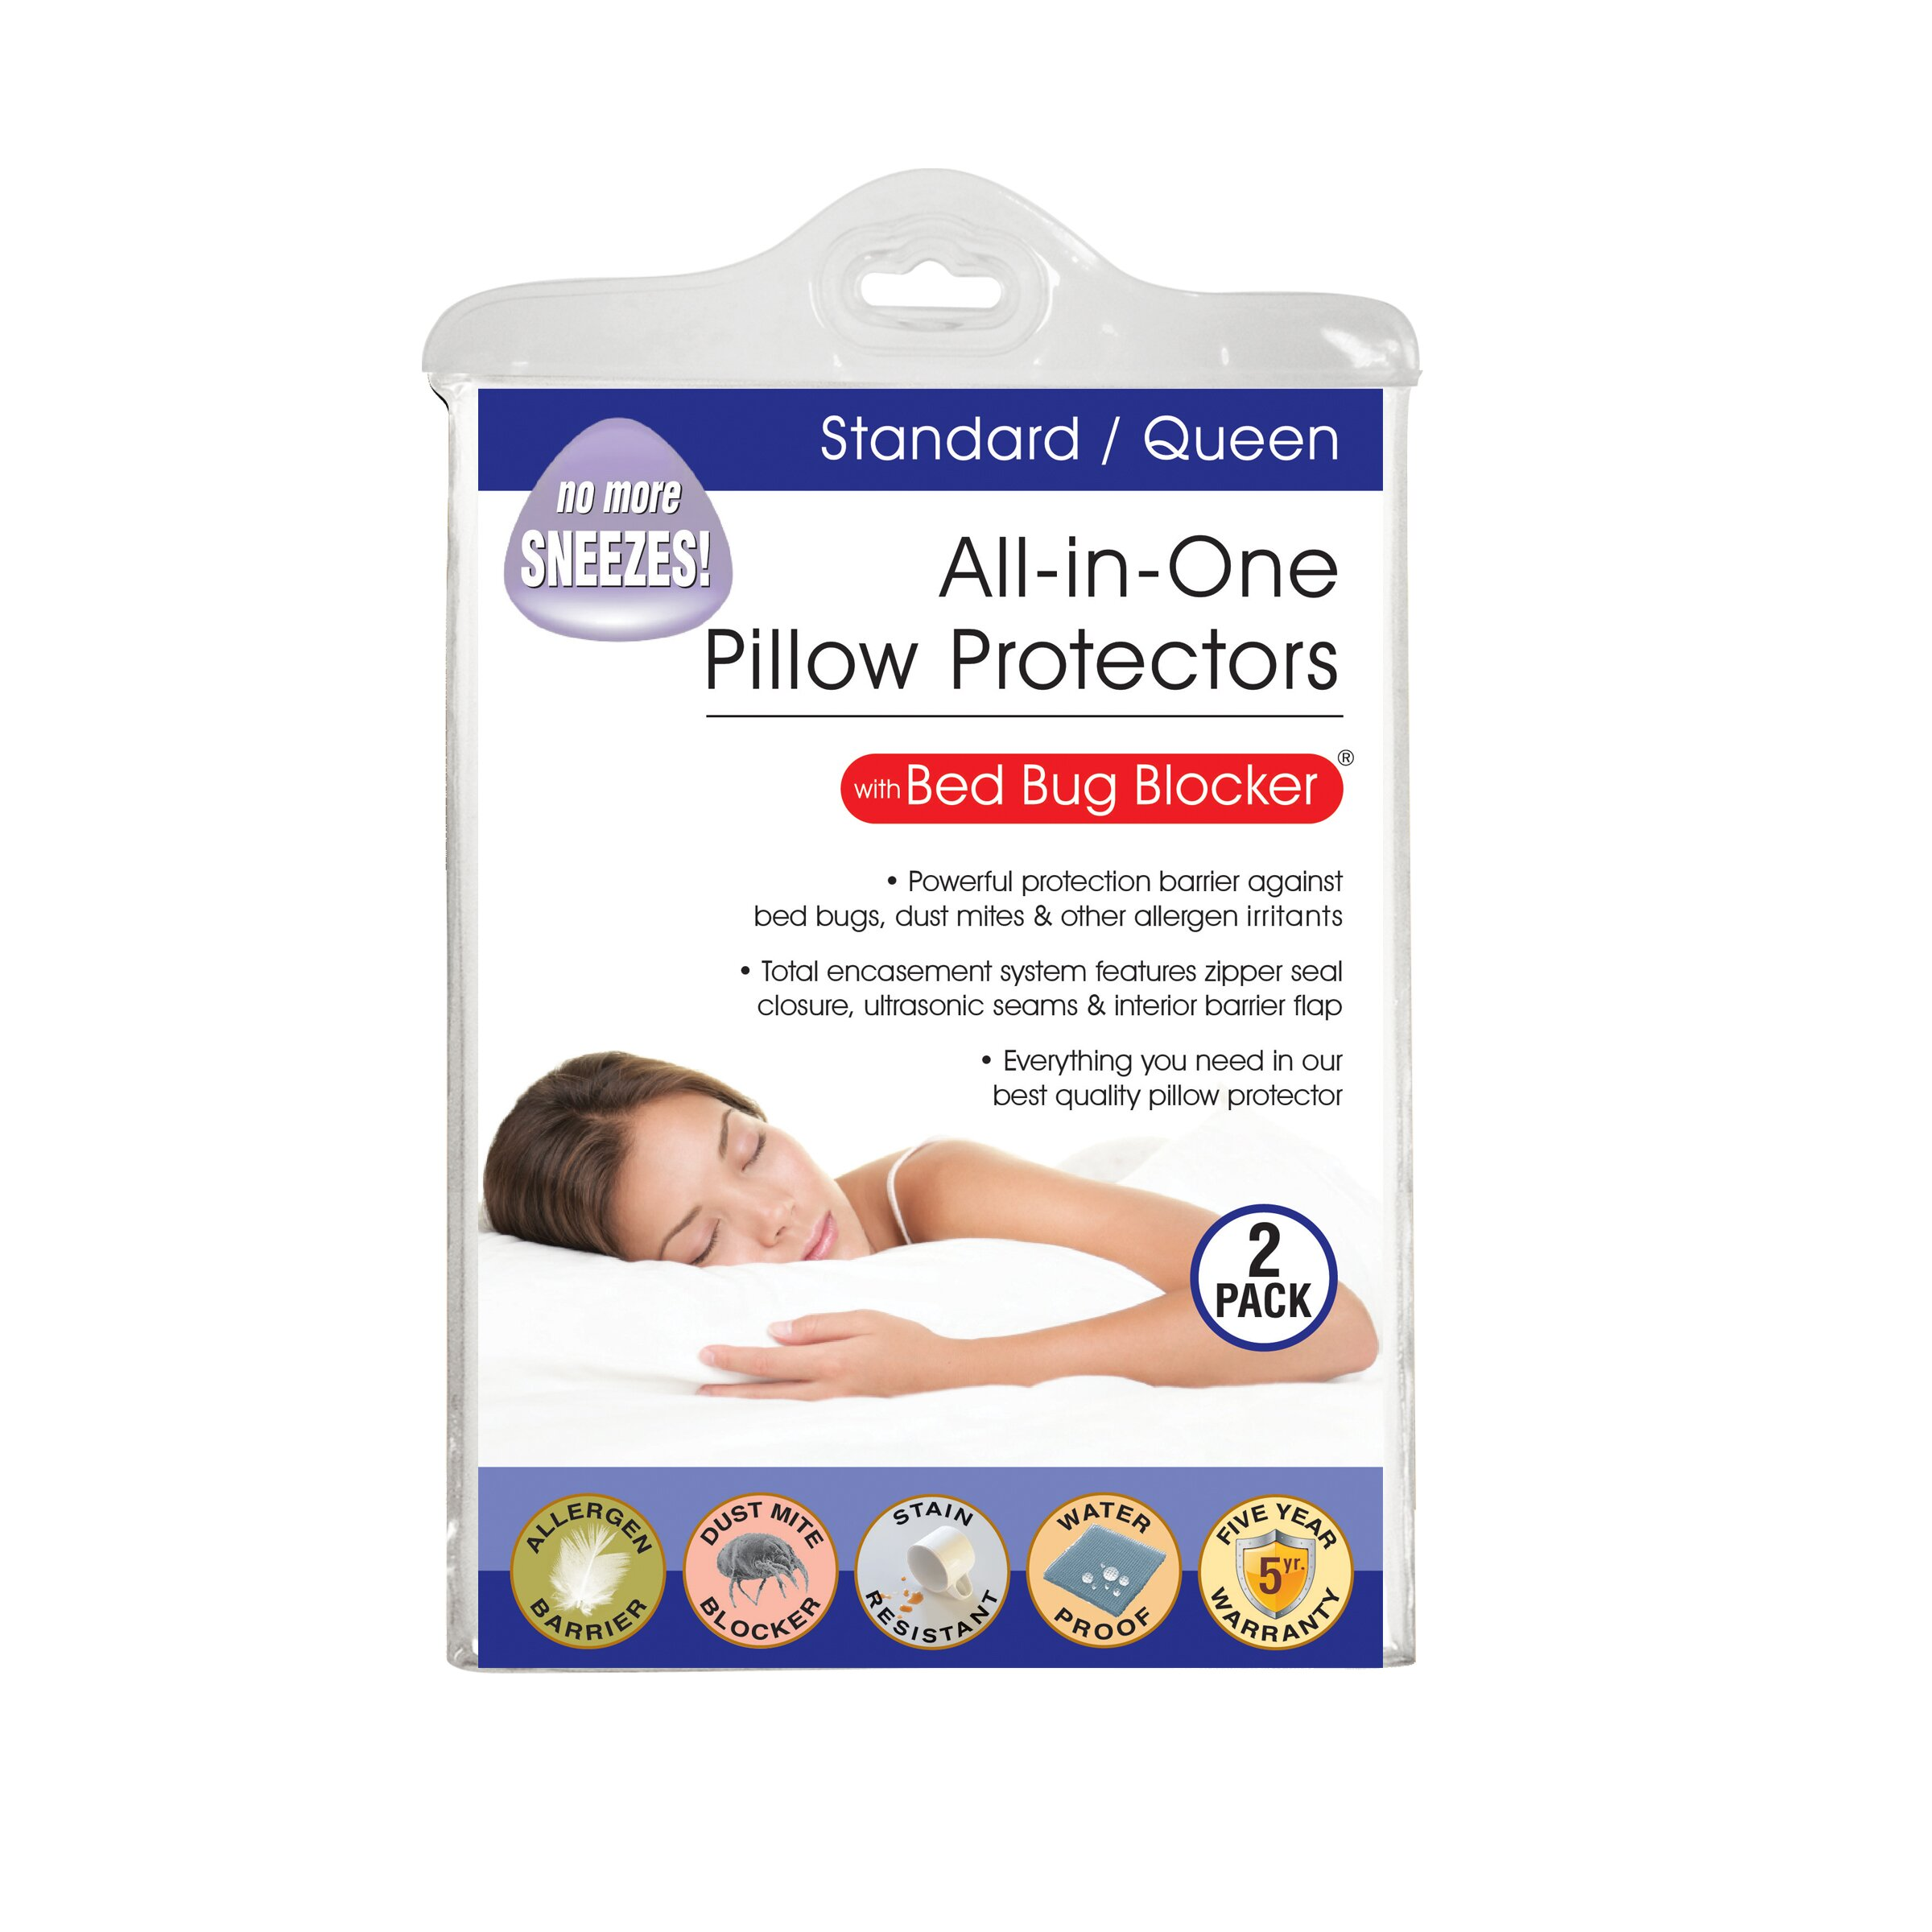 fresh ideas fresh ideas all in one bed bug pillow With all in one pillow protector